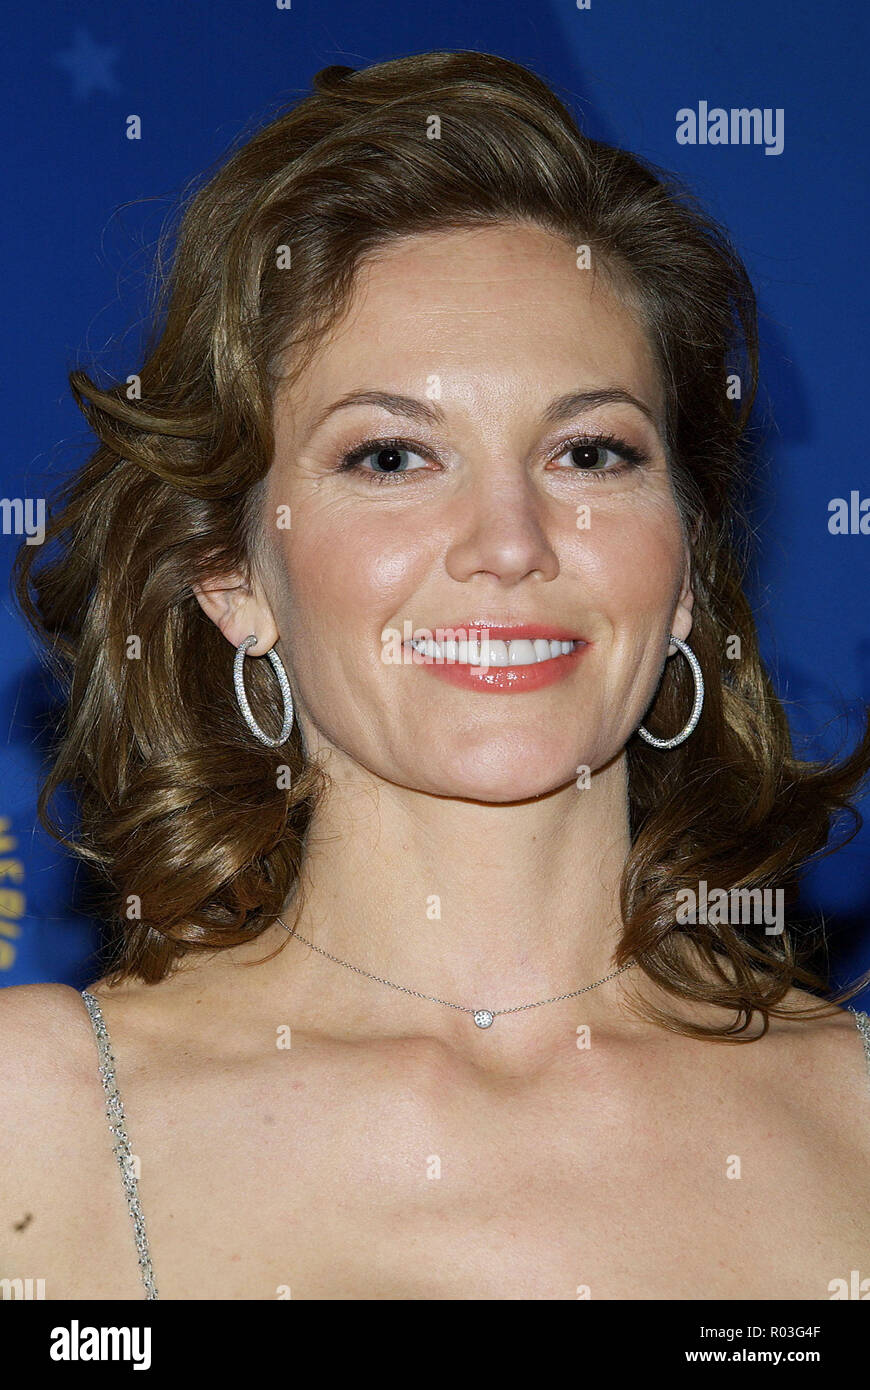 Instagram Celebrites Diane Lane naked photo 2017